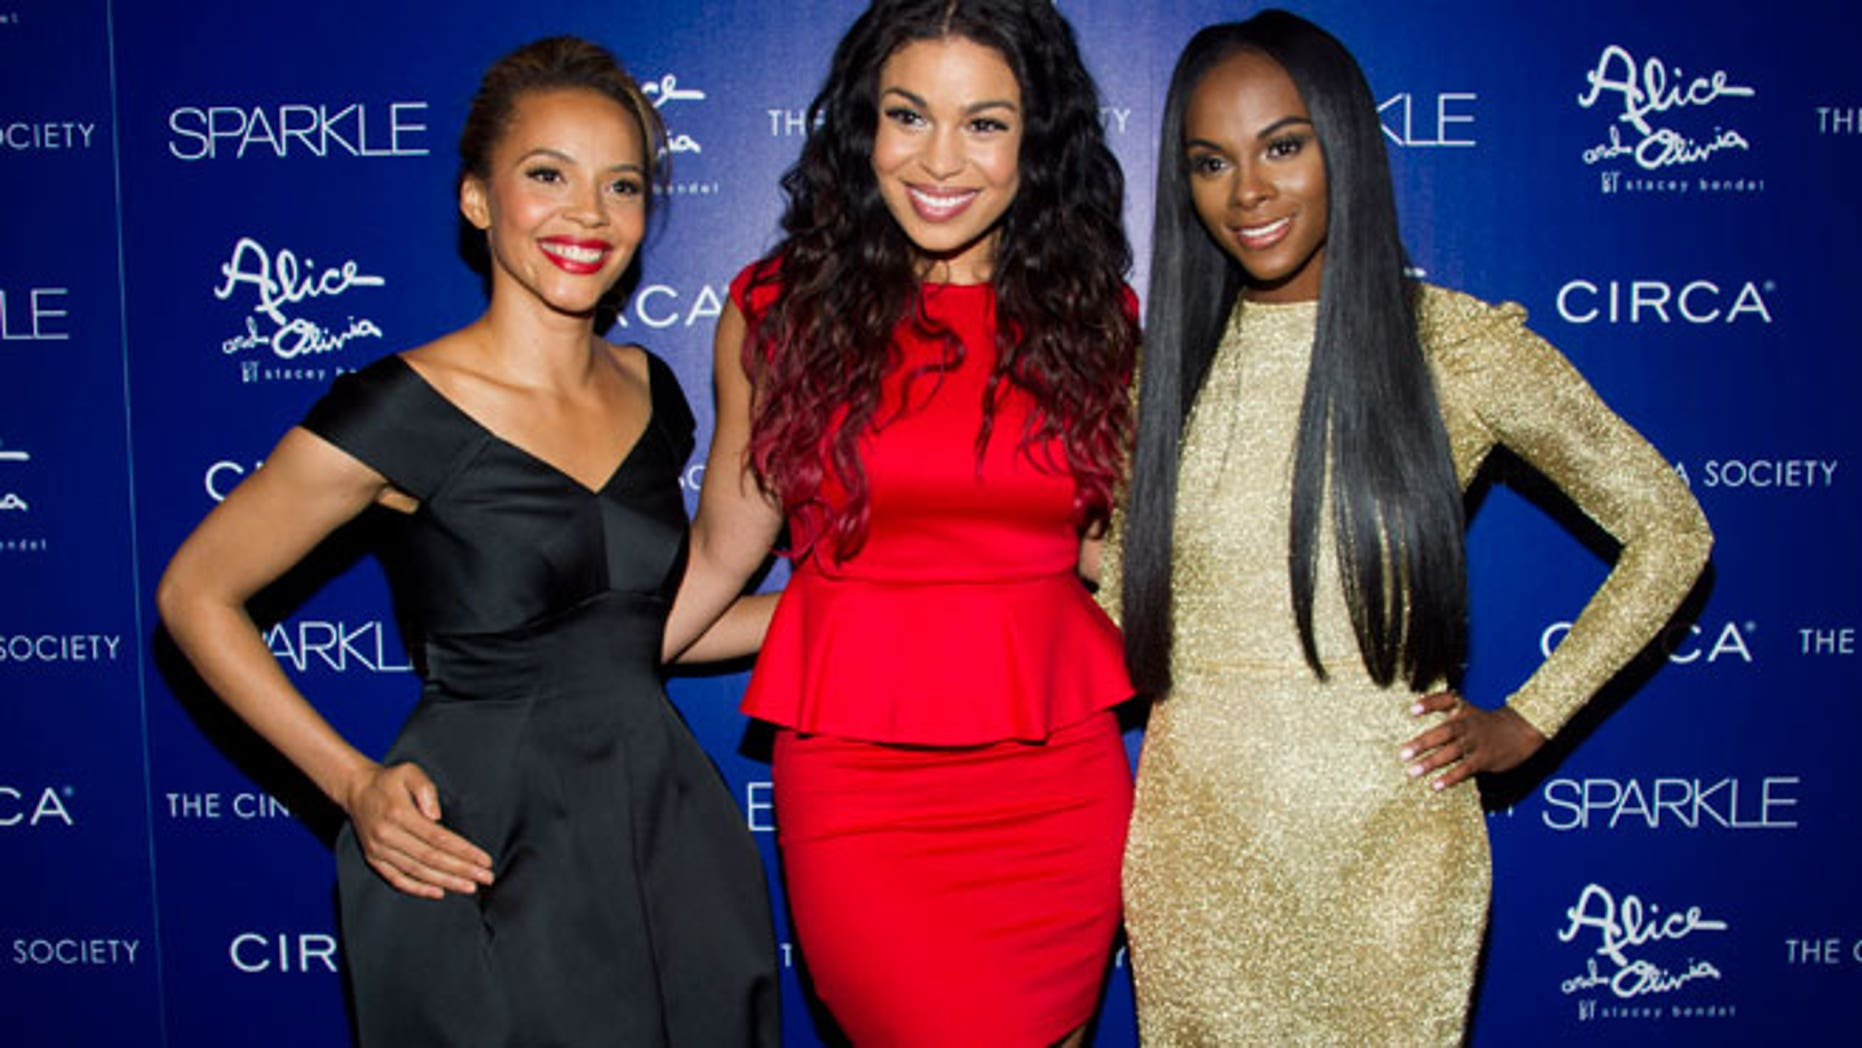 """L to R: Carmen Ejogo, Jordin Sparks and Tika Sumpter attend a screening of """"Sparkle"""" hosted by The Cinema Society with Circa and Alice & Olivia on Tuesday, Aug. 14, 2012 in New York."""